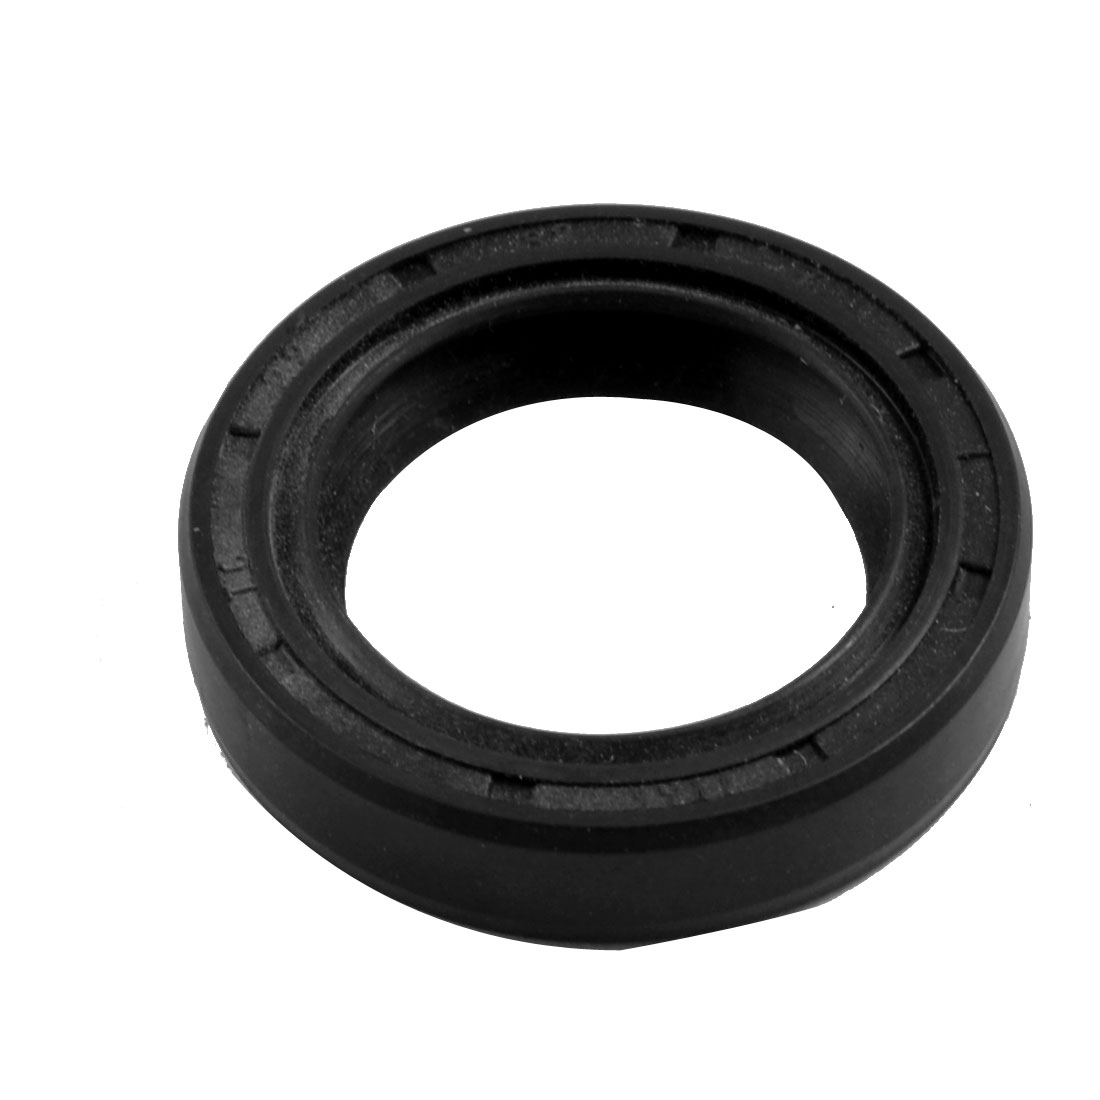 Black Nitrile Rubber Dual Lips Oil Shaft Seal TC 22mm x 32mm x 7mm